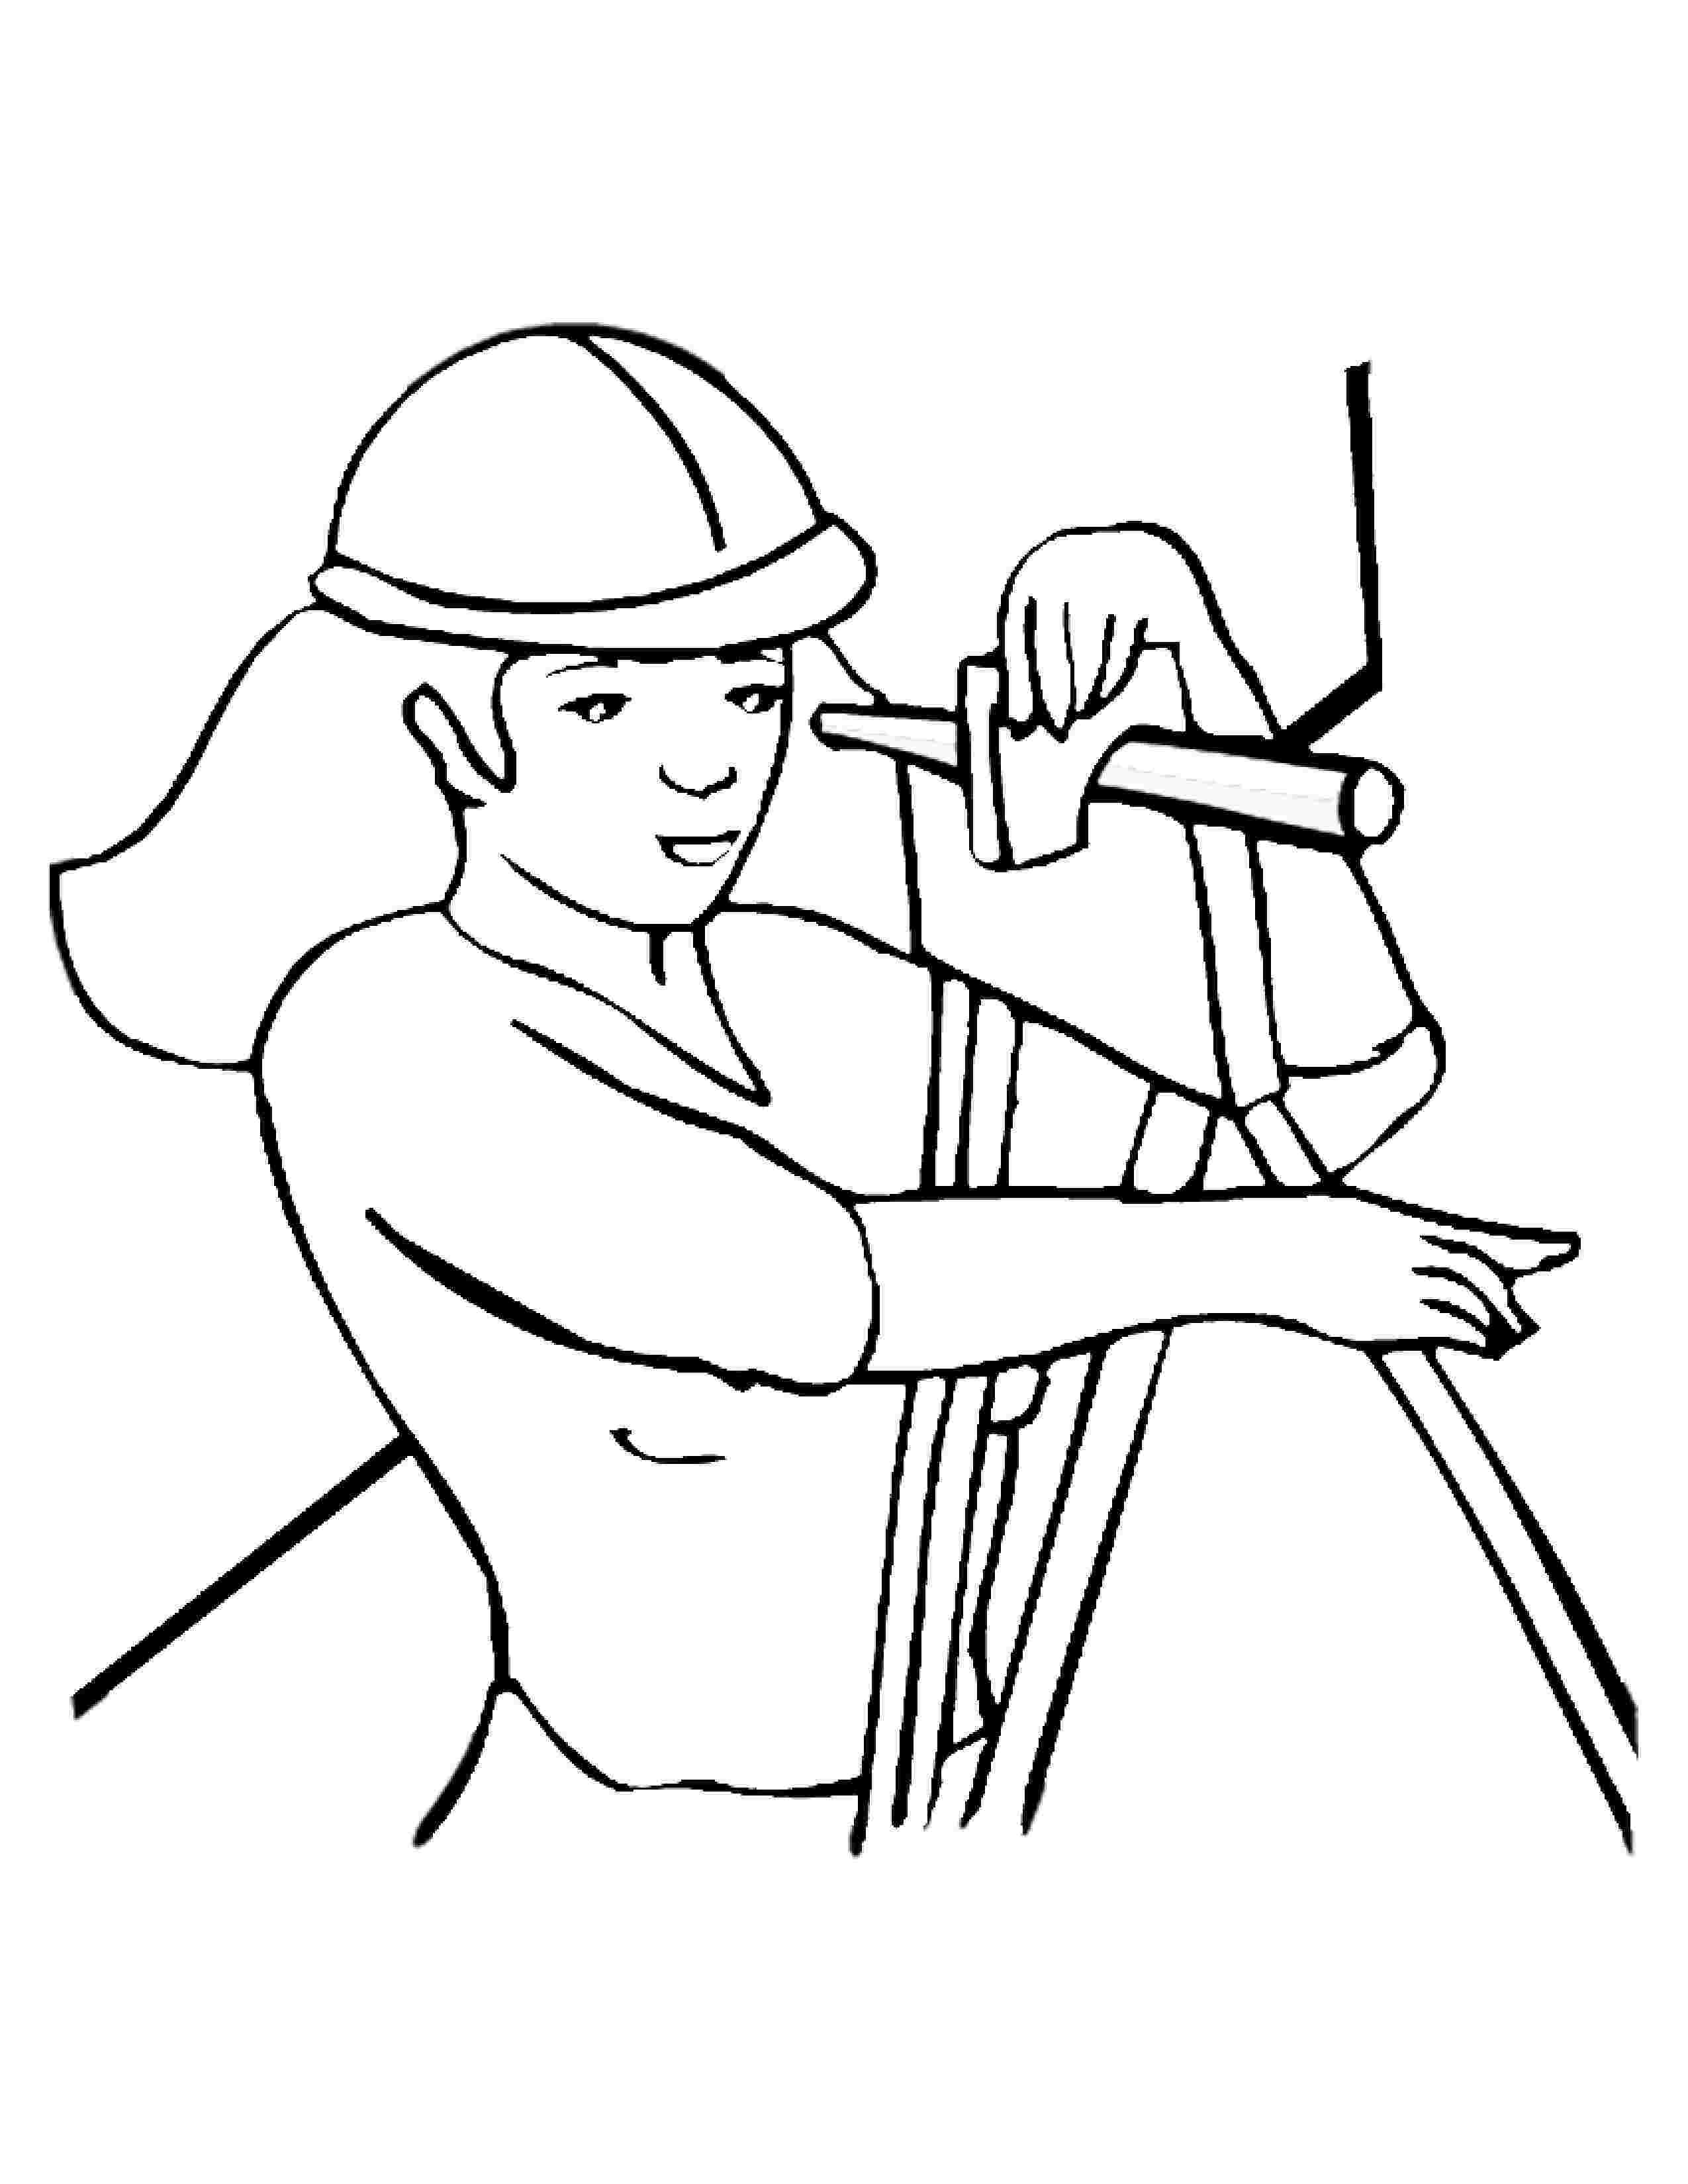 construction coloring page 9 pics of free construction equipment coloring pages page coloring construction